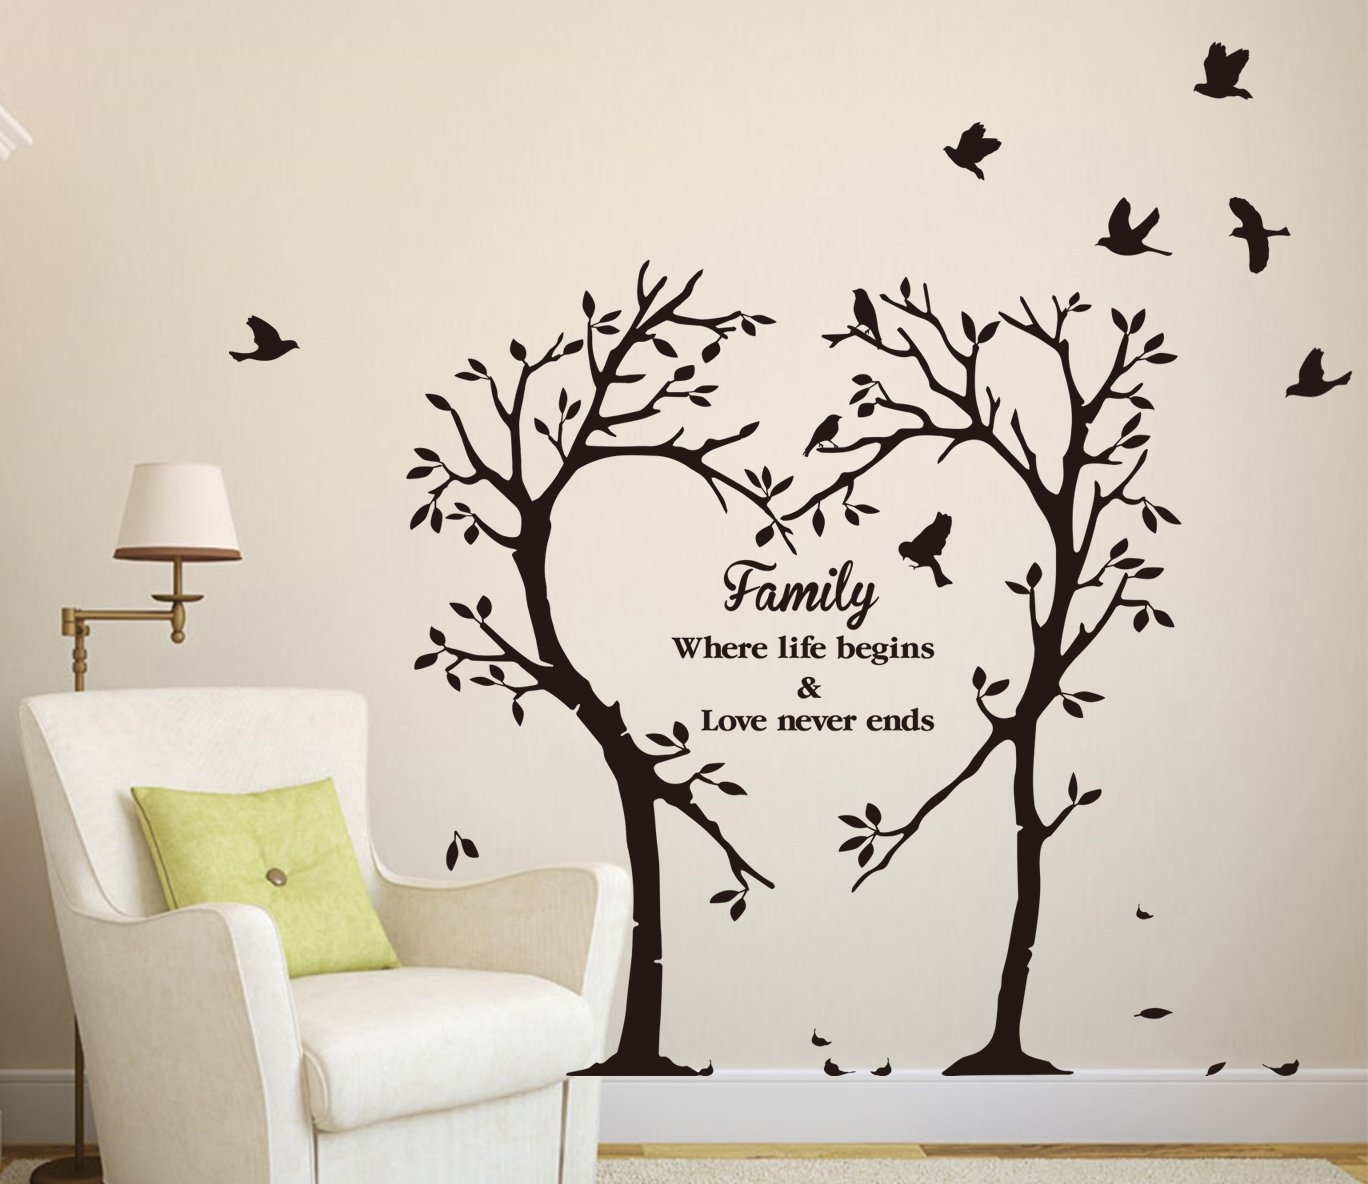 Large Family Inspirational Love Tree Wall Art Sticker, Wall Sticker intended for Most Recent Wall Tree Art